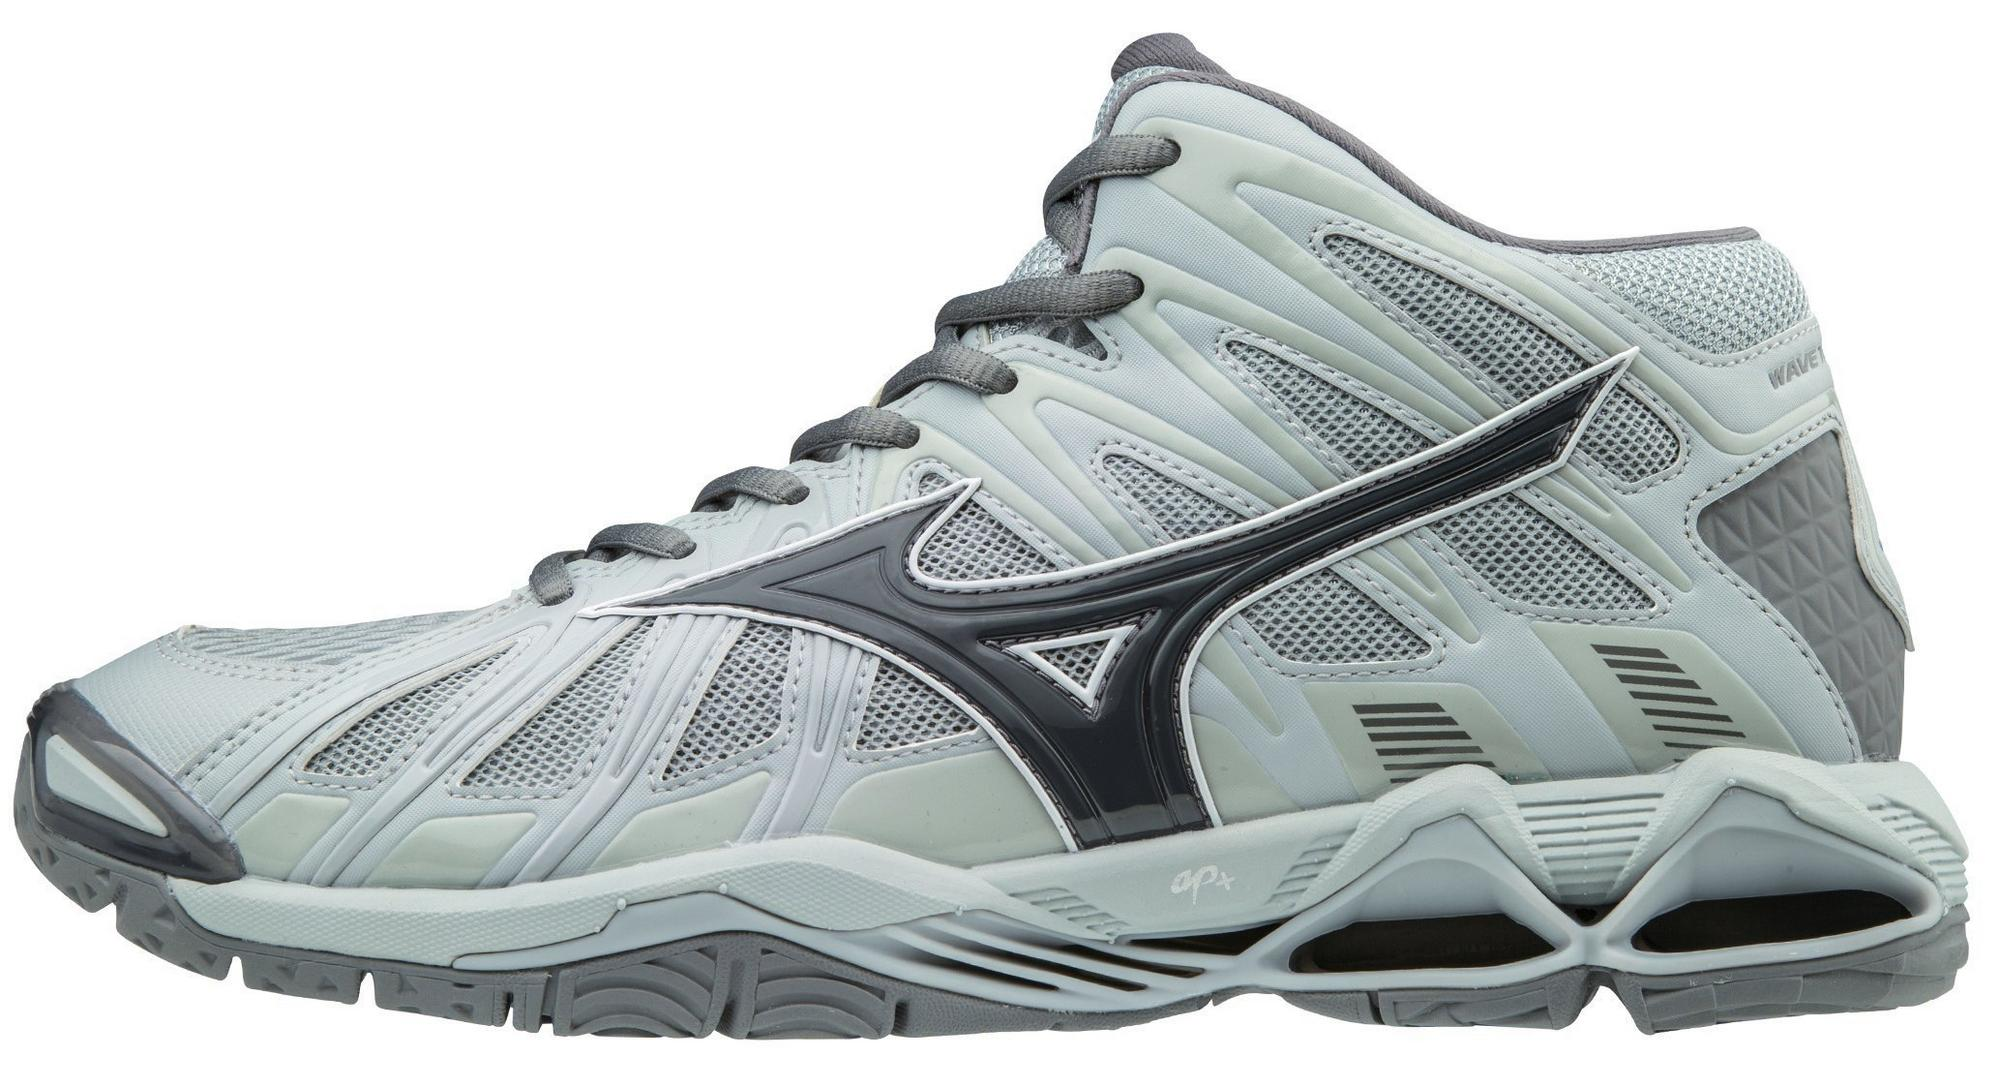 grey mizuno volleyball shoes kits